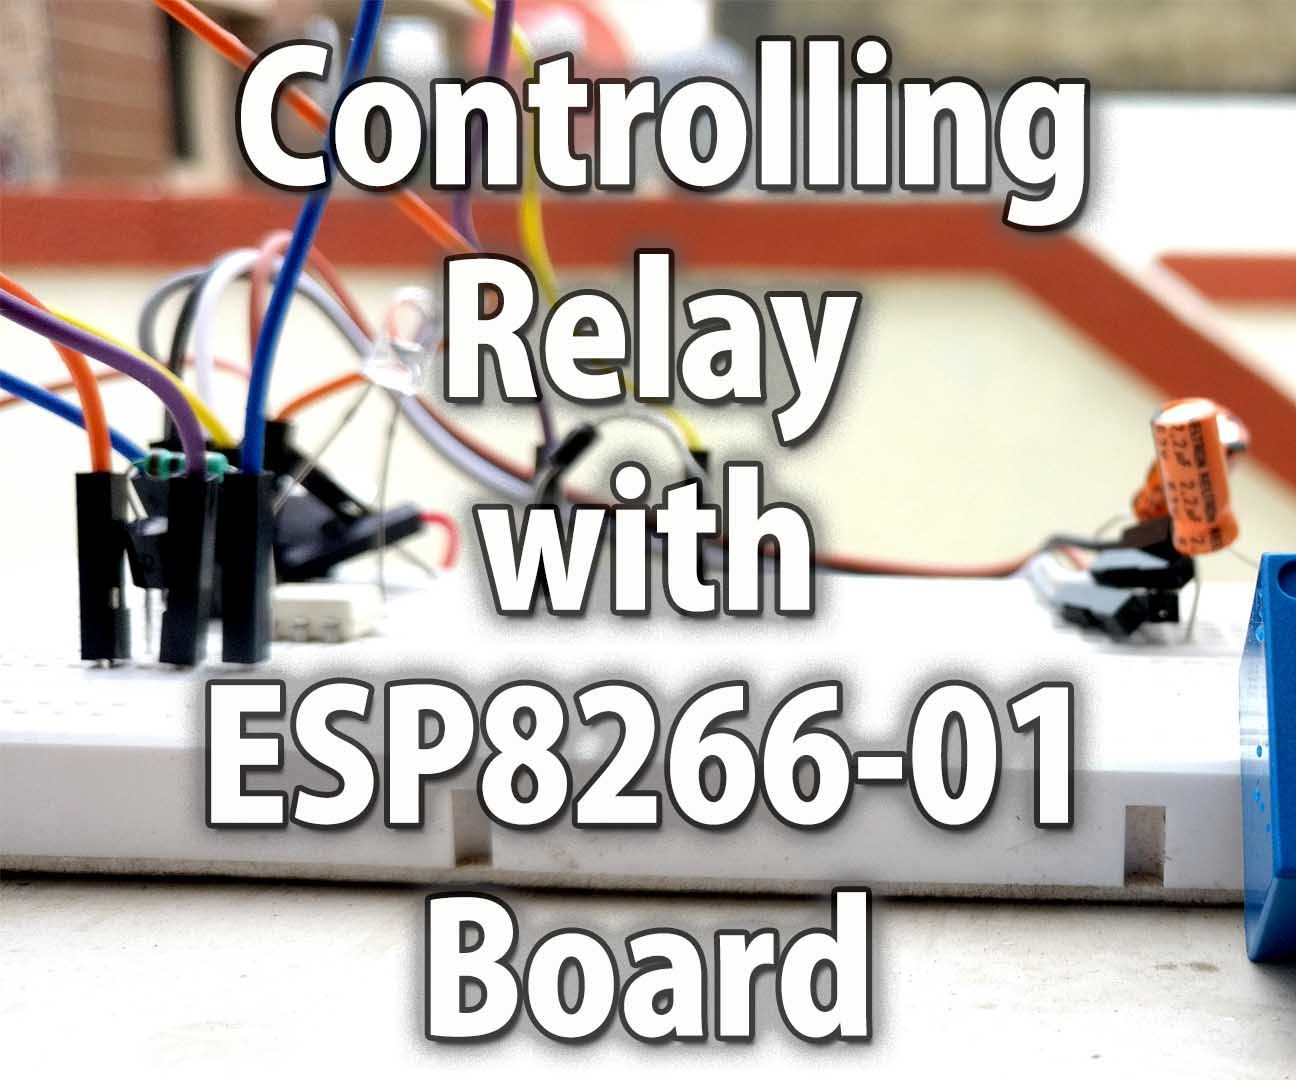 Control a Relay With Esp8266 Module